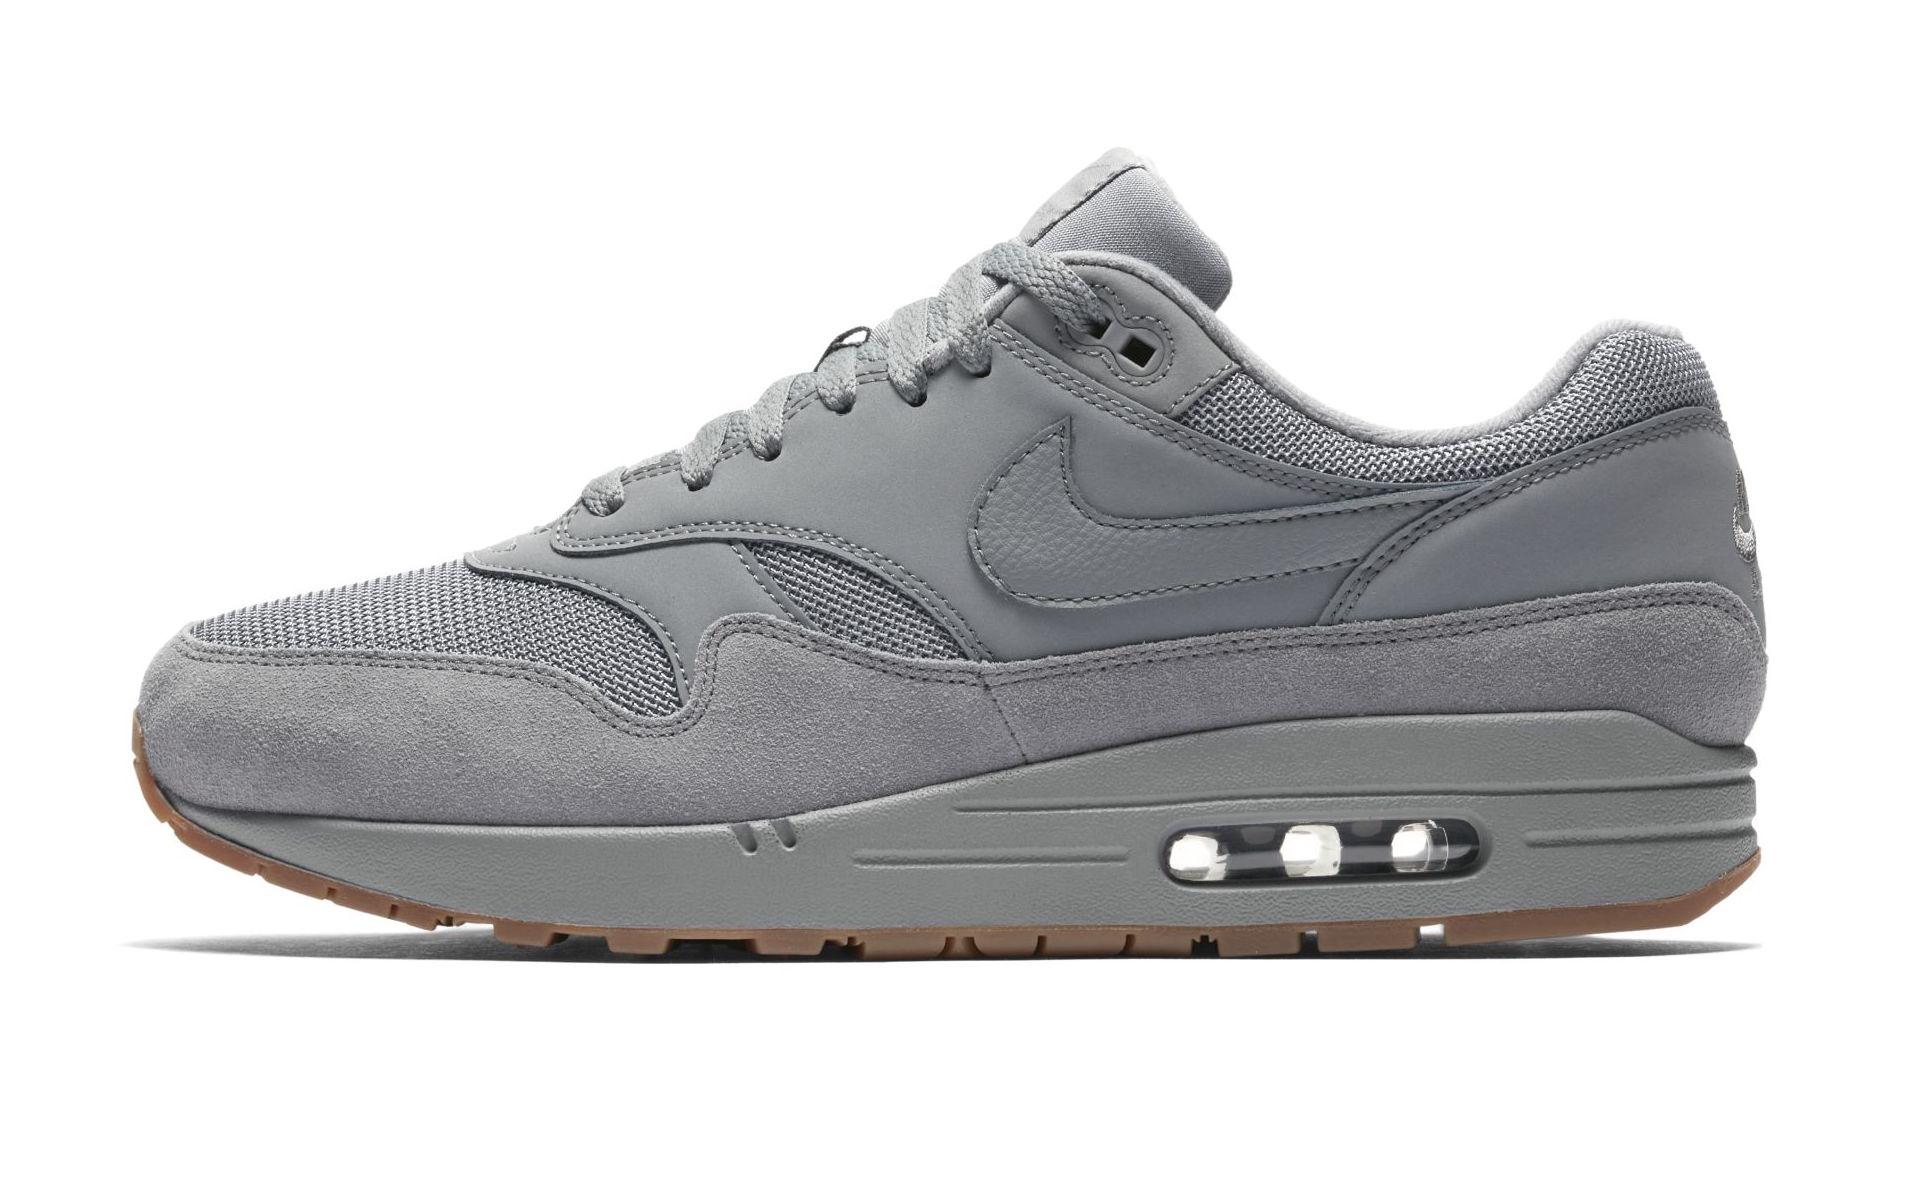 pick up designer fashion latest Look Out For The Nike Air Max 1 Wolf Grey Gum • KicksOnFire.com